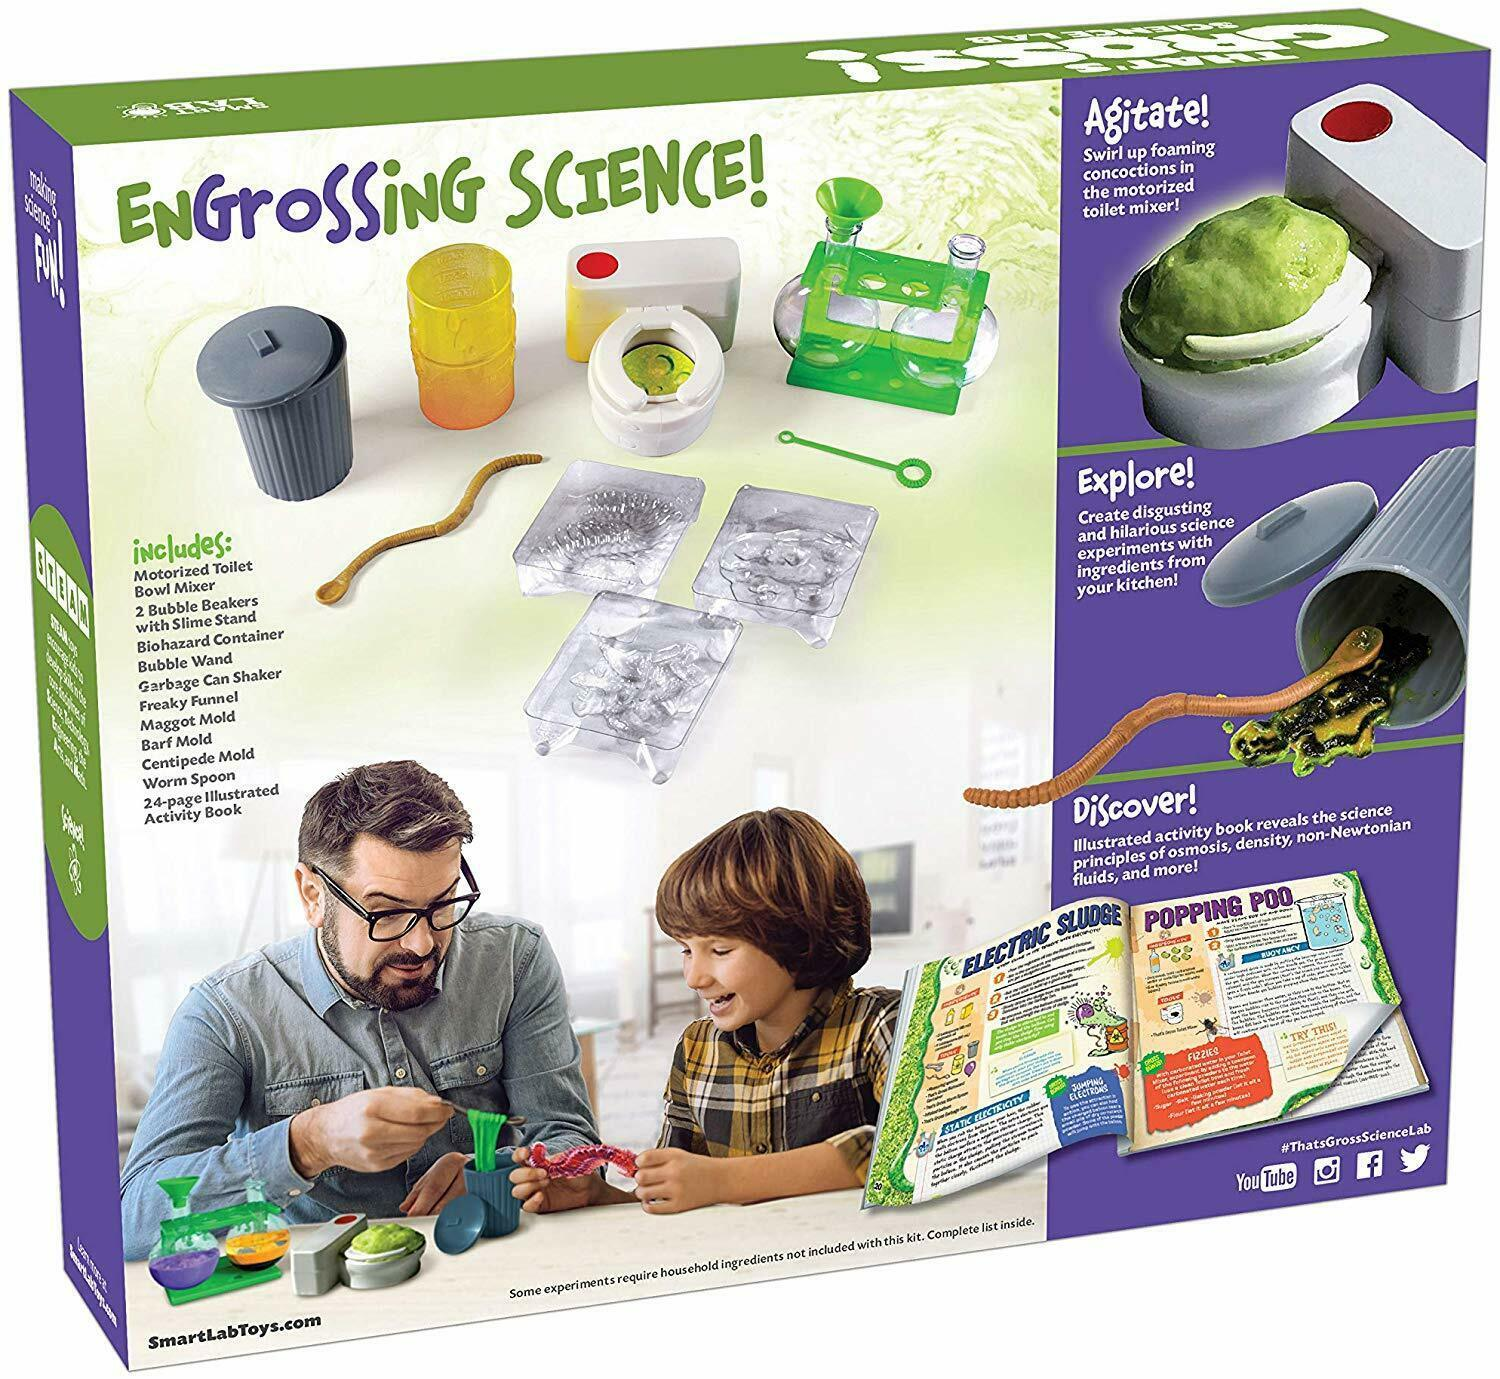 Smart Lab That's Gross Science Lab 26 Outrageous Experiments STEAM Chemistry 8+